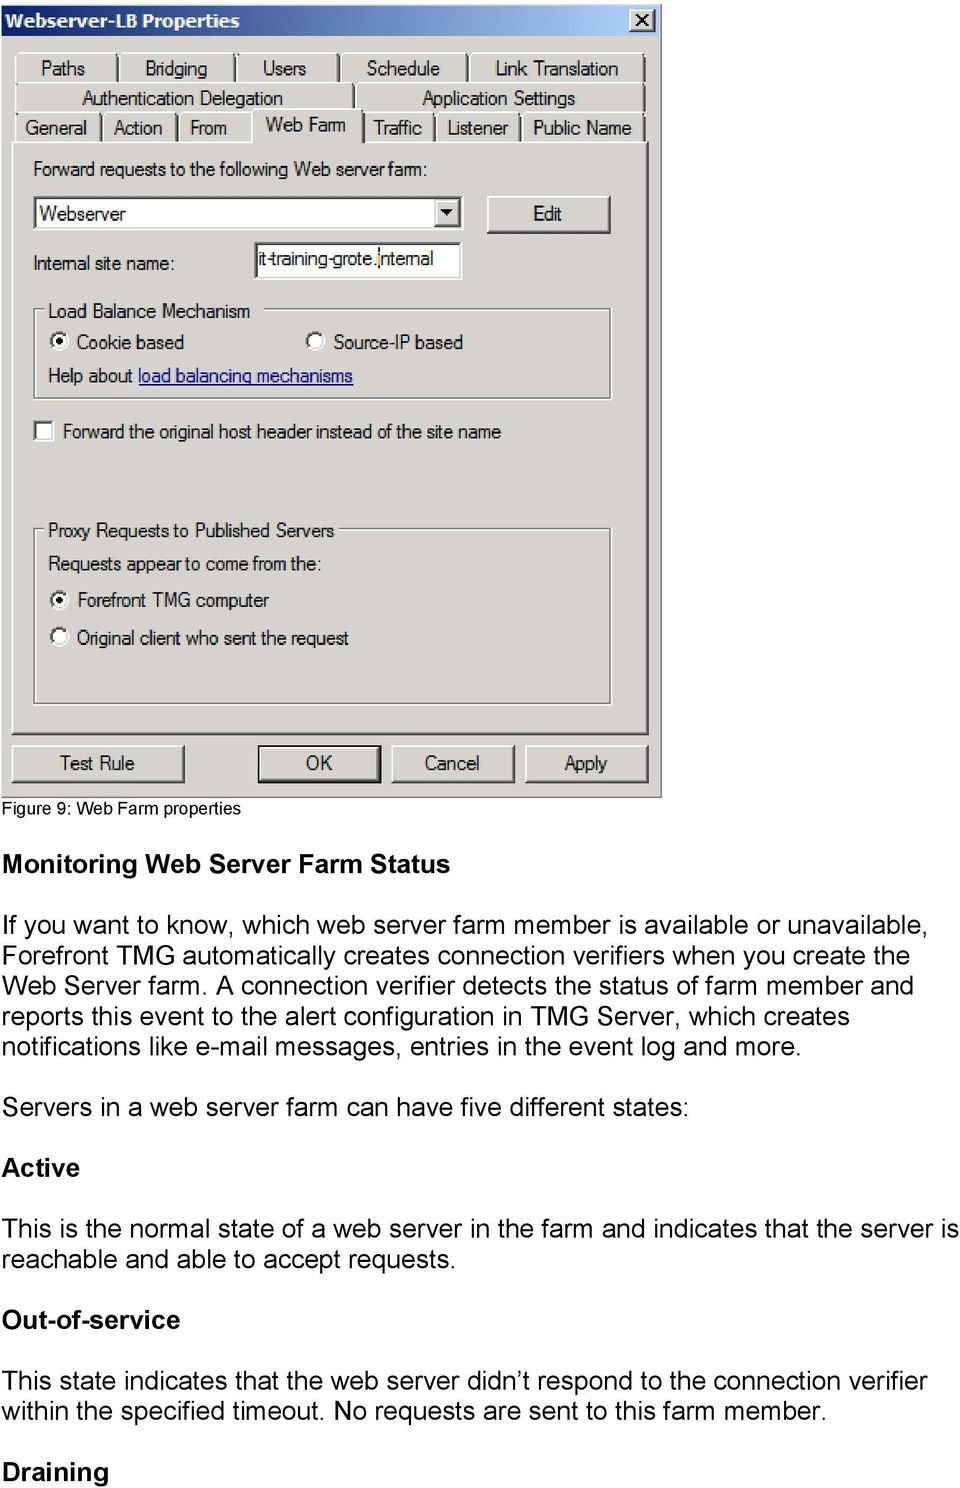 A connection verifier detects the status of farm member and reports this event to the alert configuration in TMG Server, which creates notifications like e-mail messages, entries in the event log and